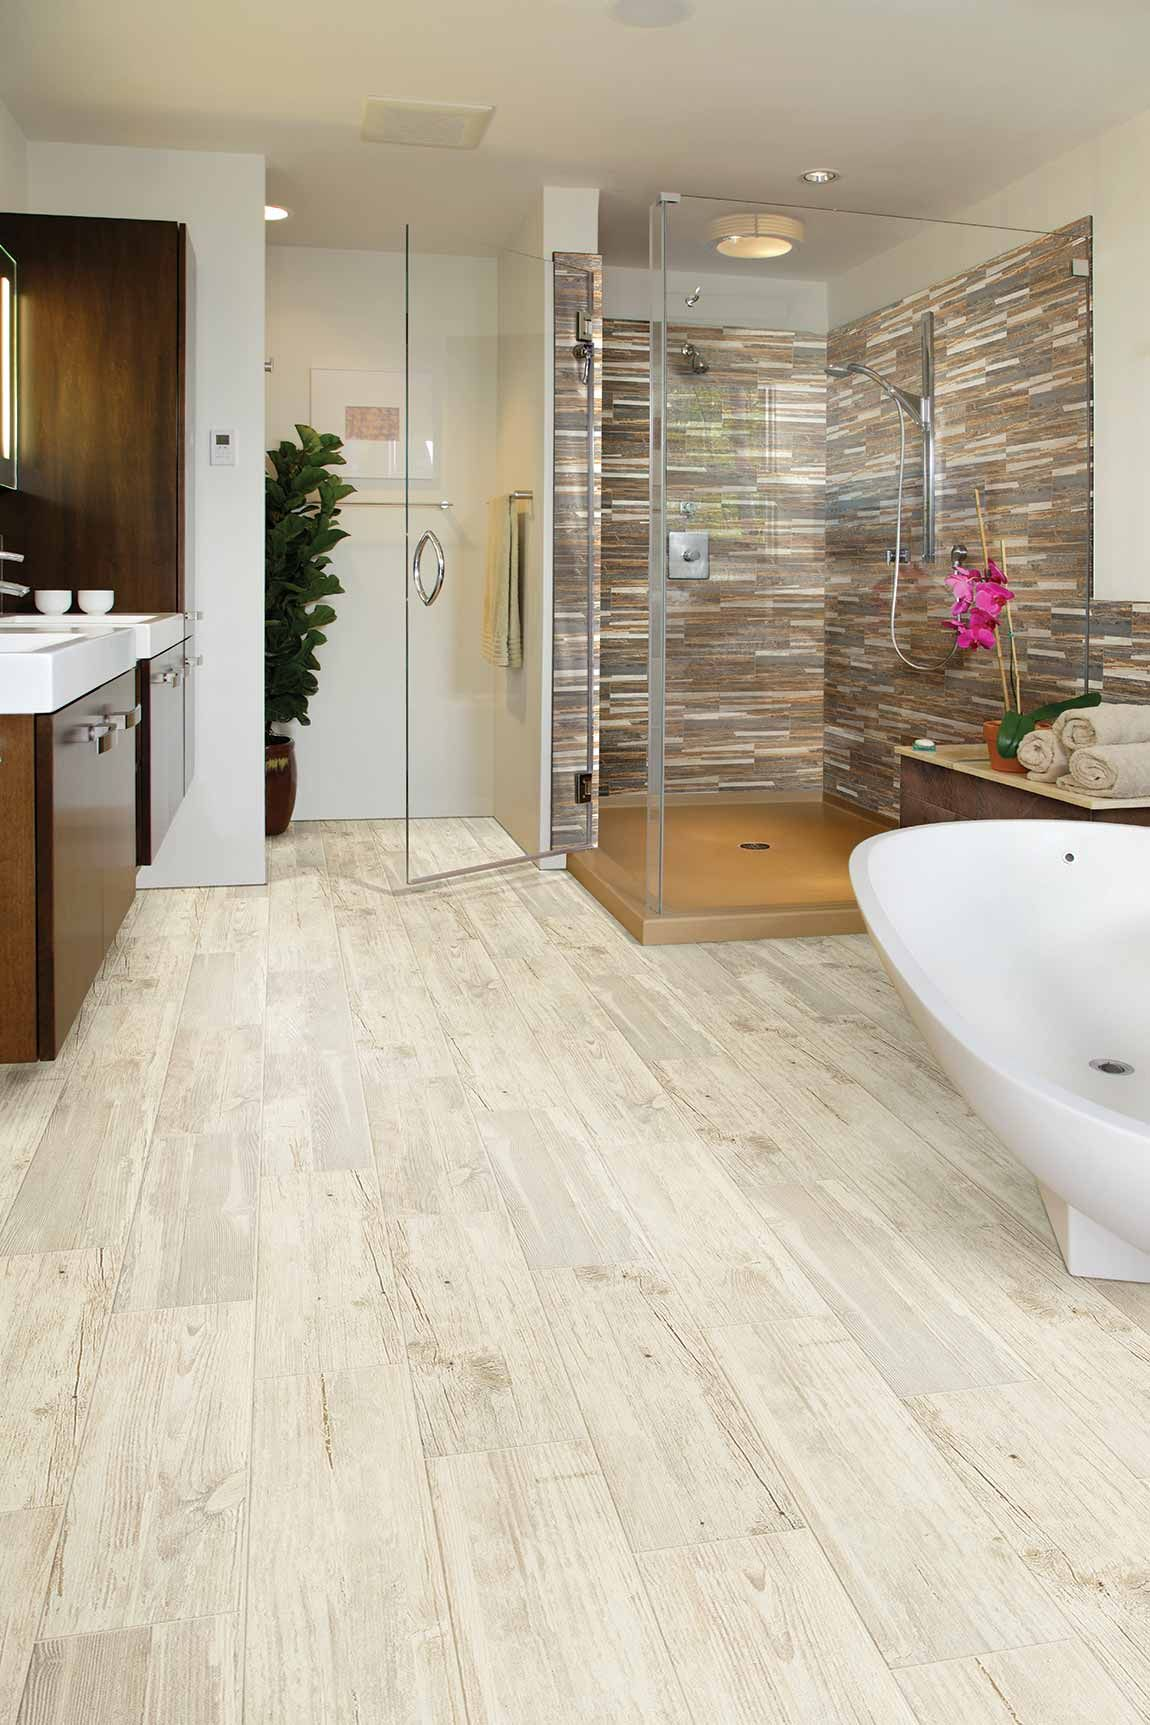 Minimalist Home Design Styles Are On The Rise Given This Less Is More Approach Designers Are Only Select Wood Look Tile Floor Tile Design Bathrooms Remodel